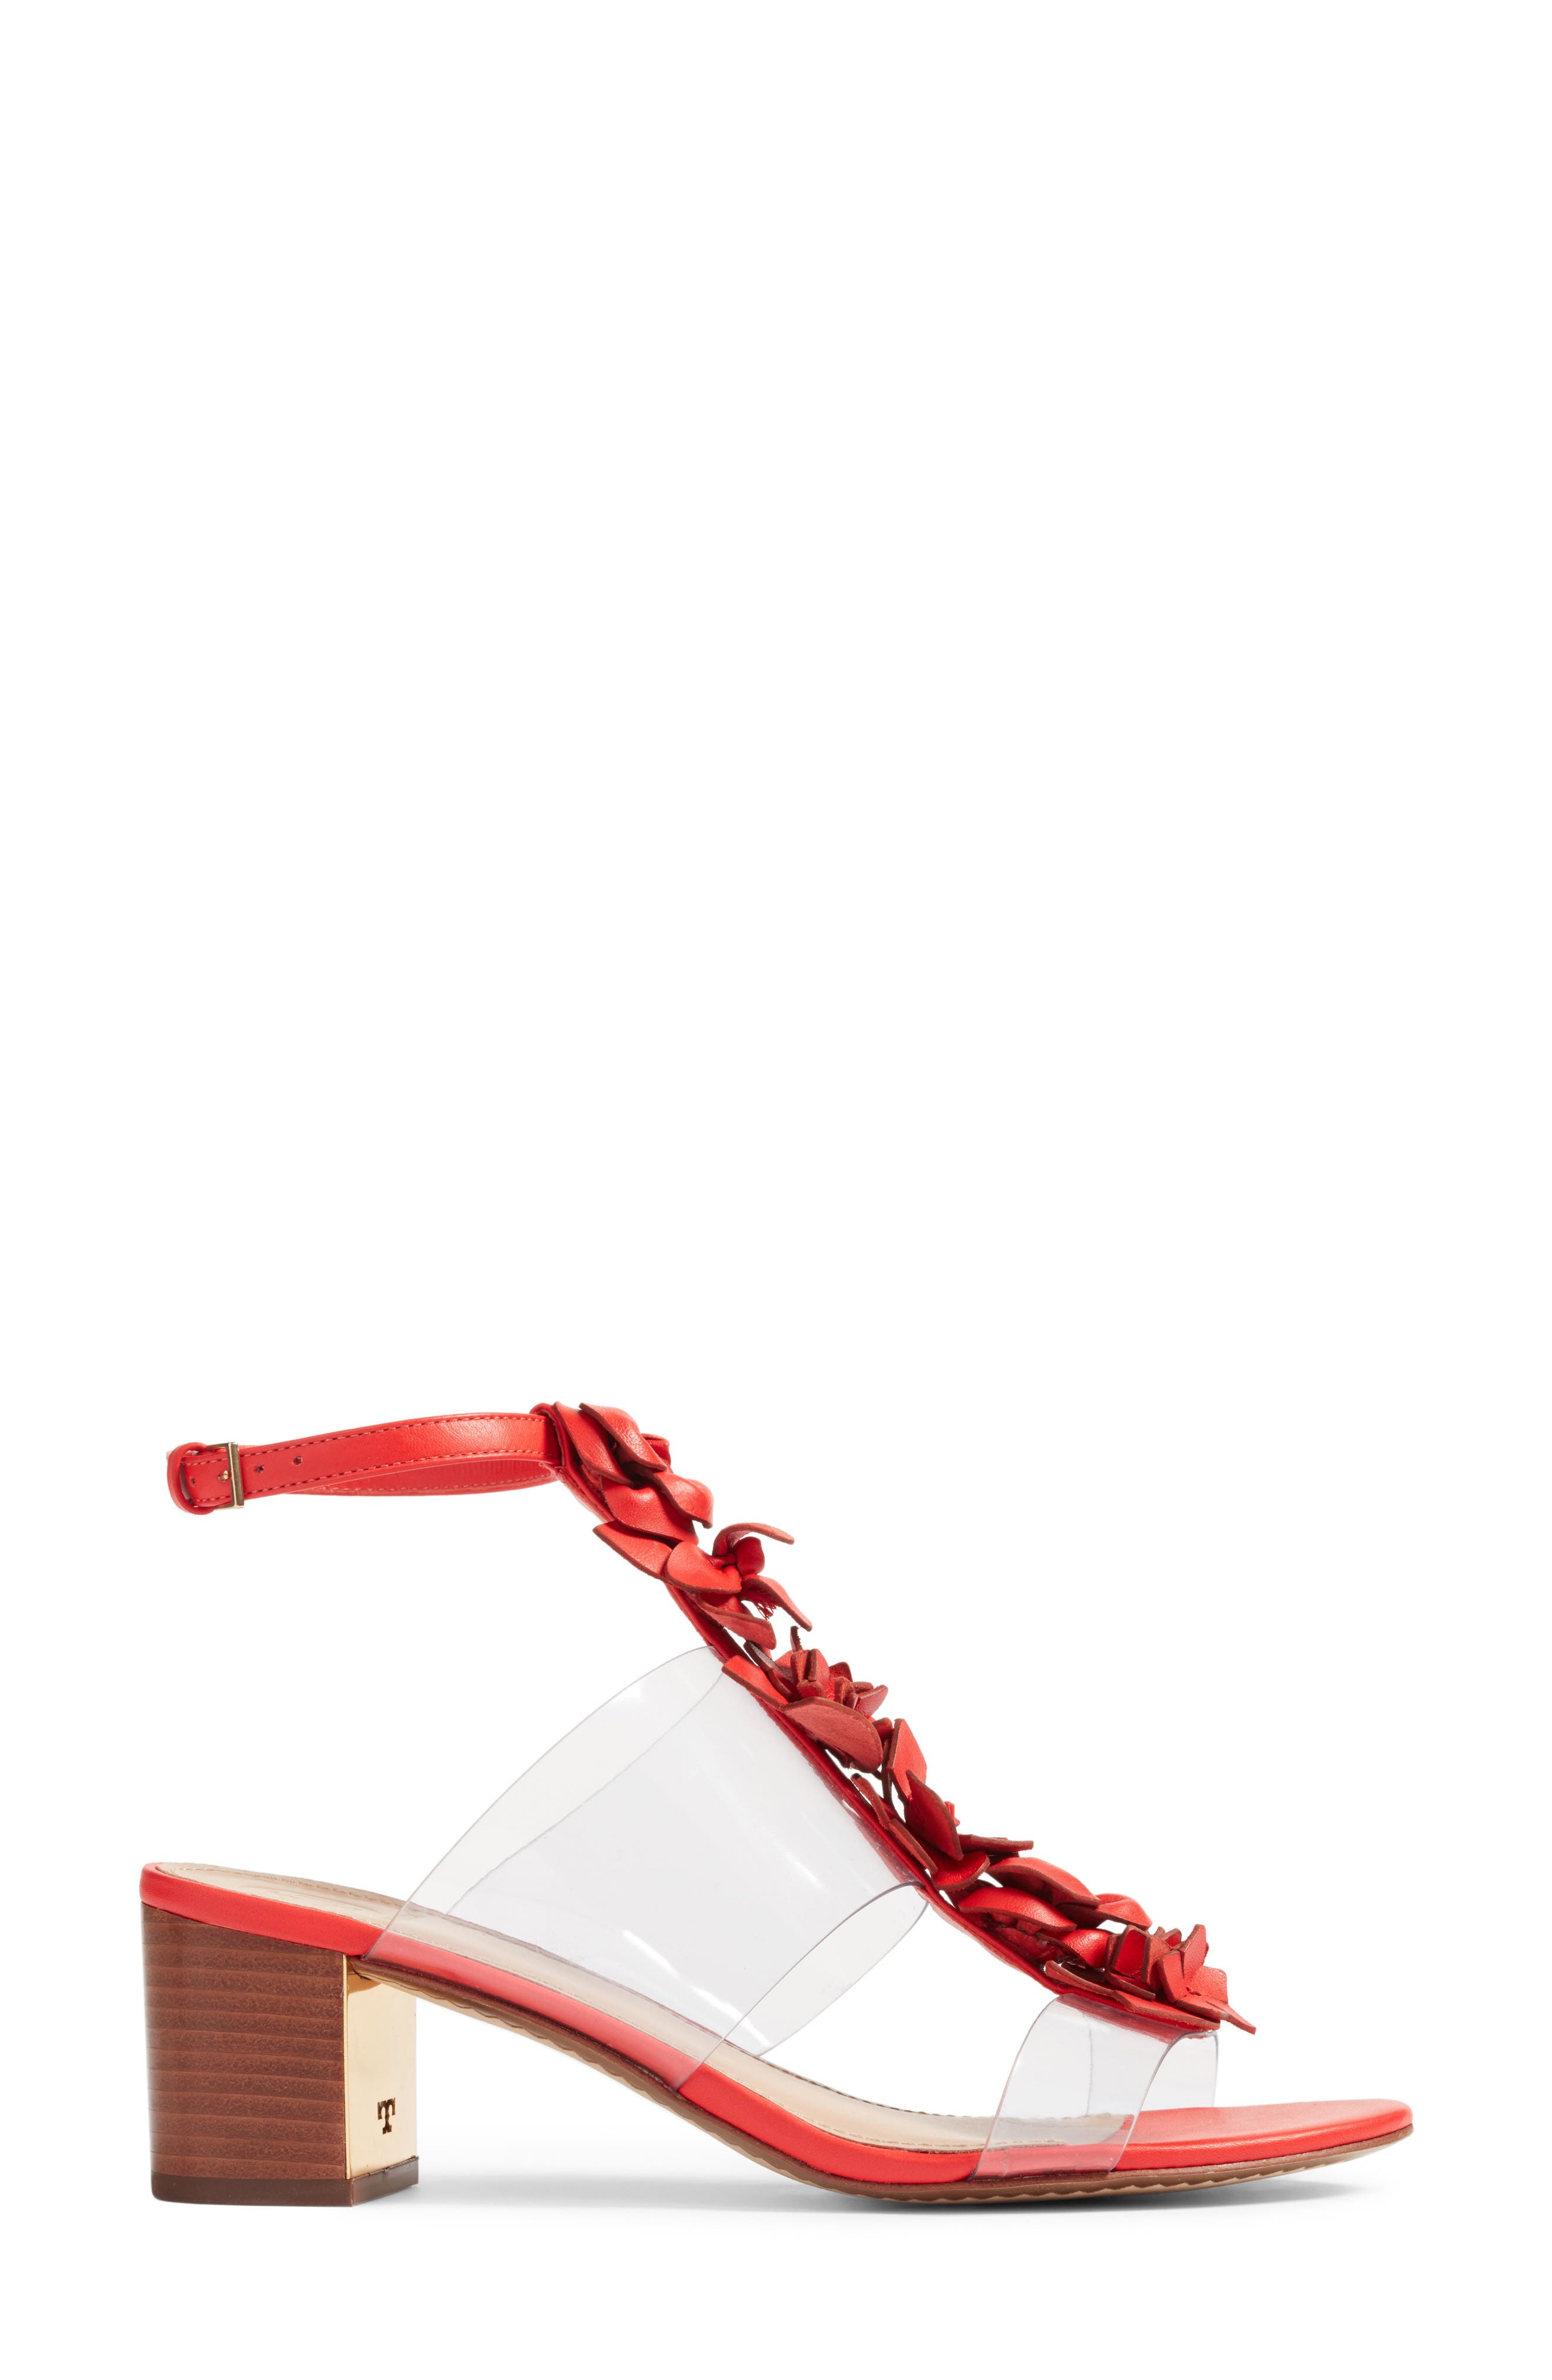 Blossom Sandal,                             Alternate thumbnail 4, color,                             Red Volcano/ Clear